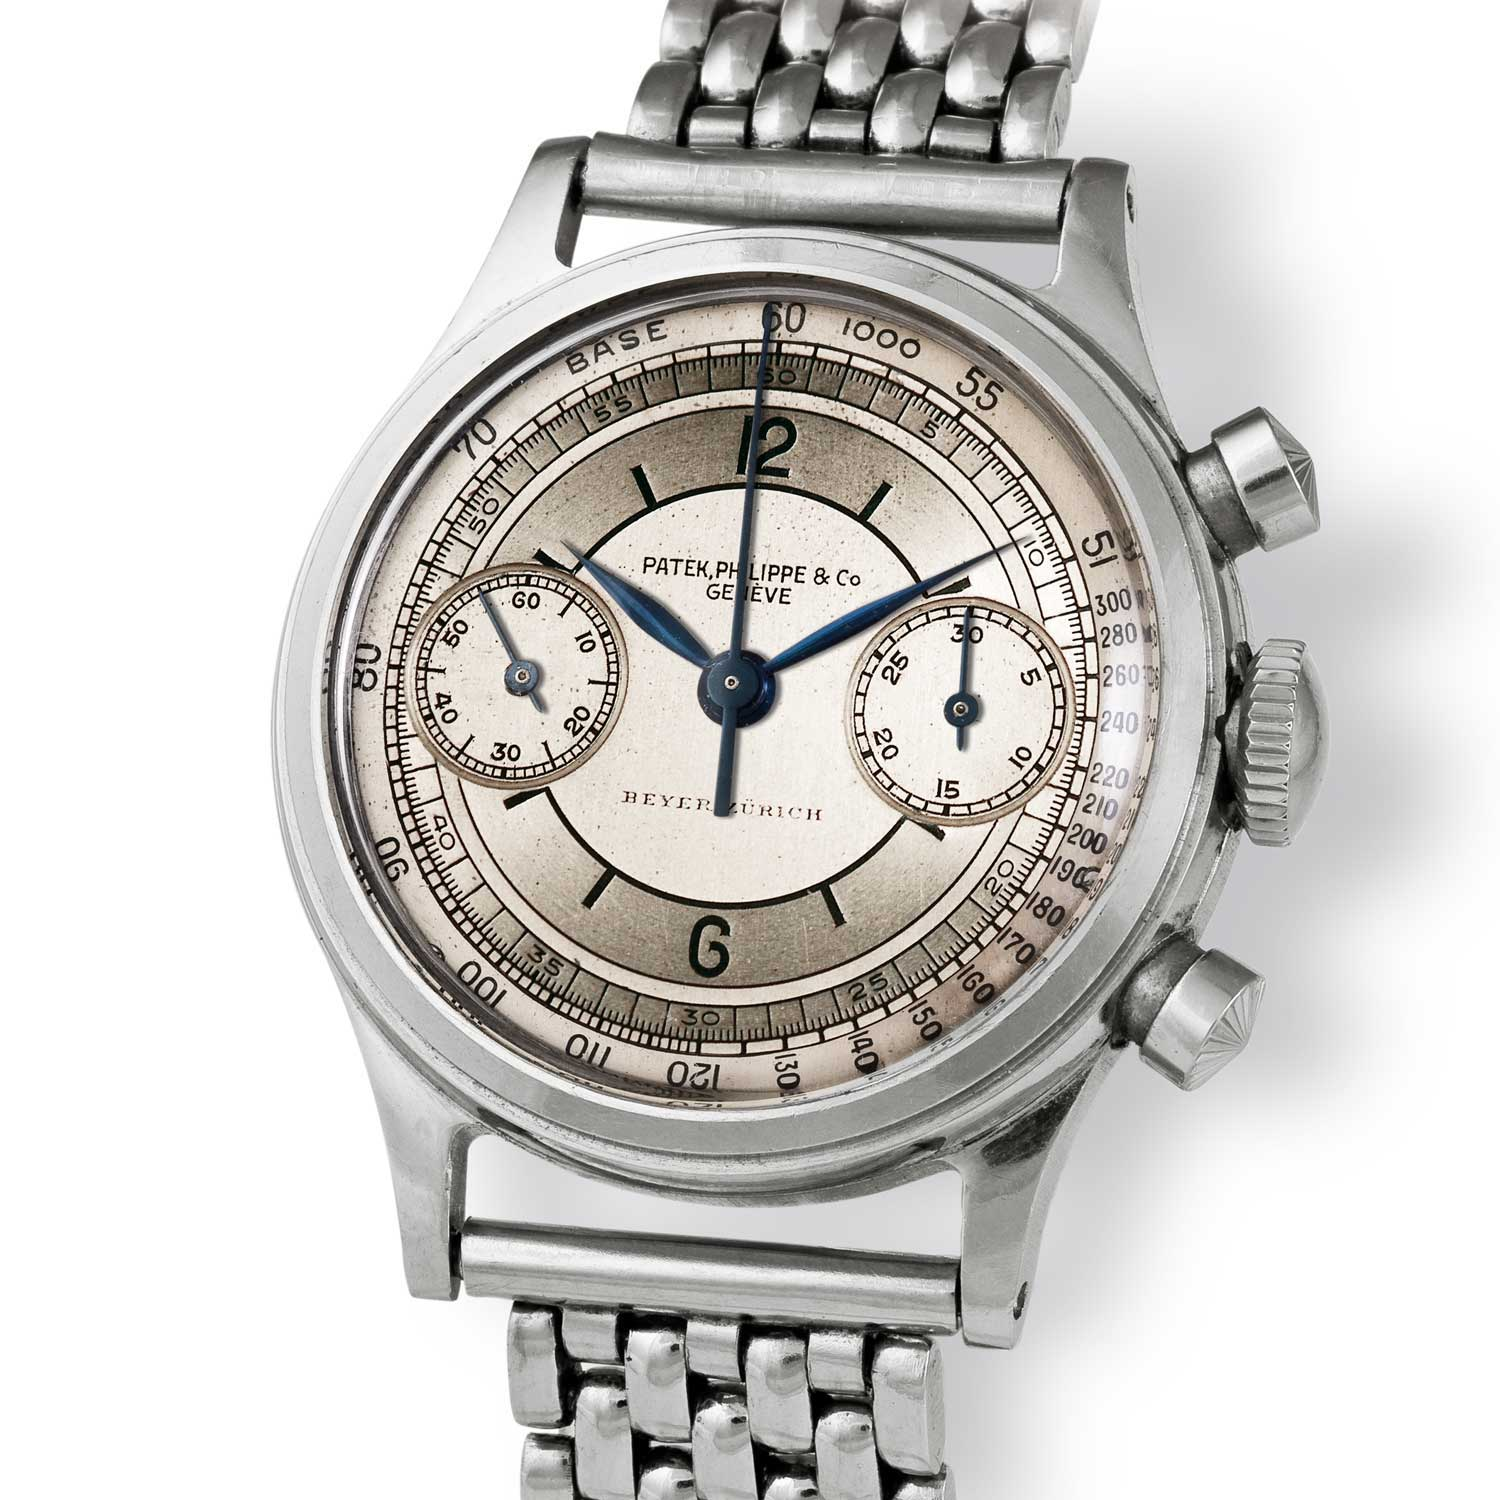 Patek Philippe ref. 1463 steel chronograph with sector dial (Image: John Goldberger)